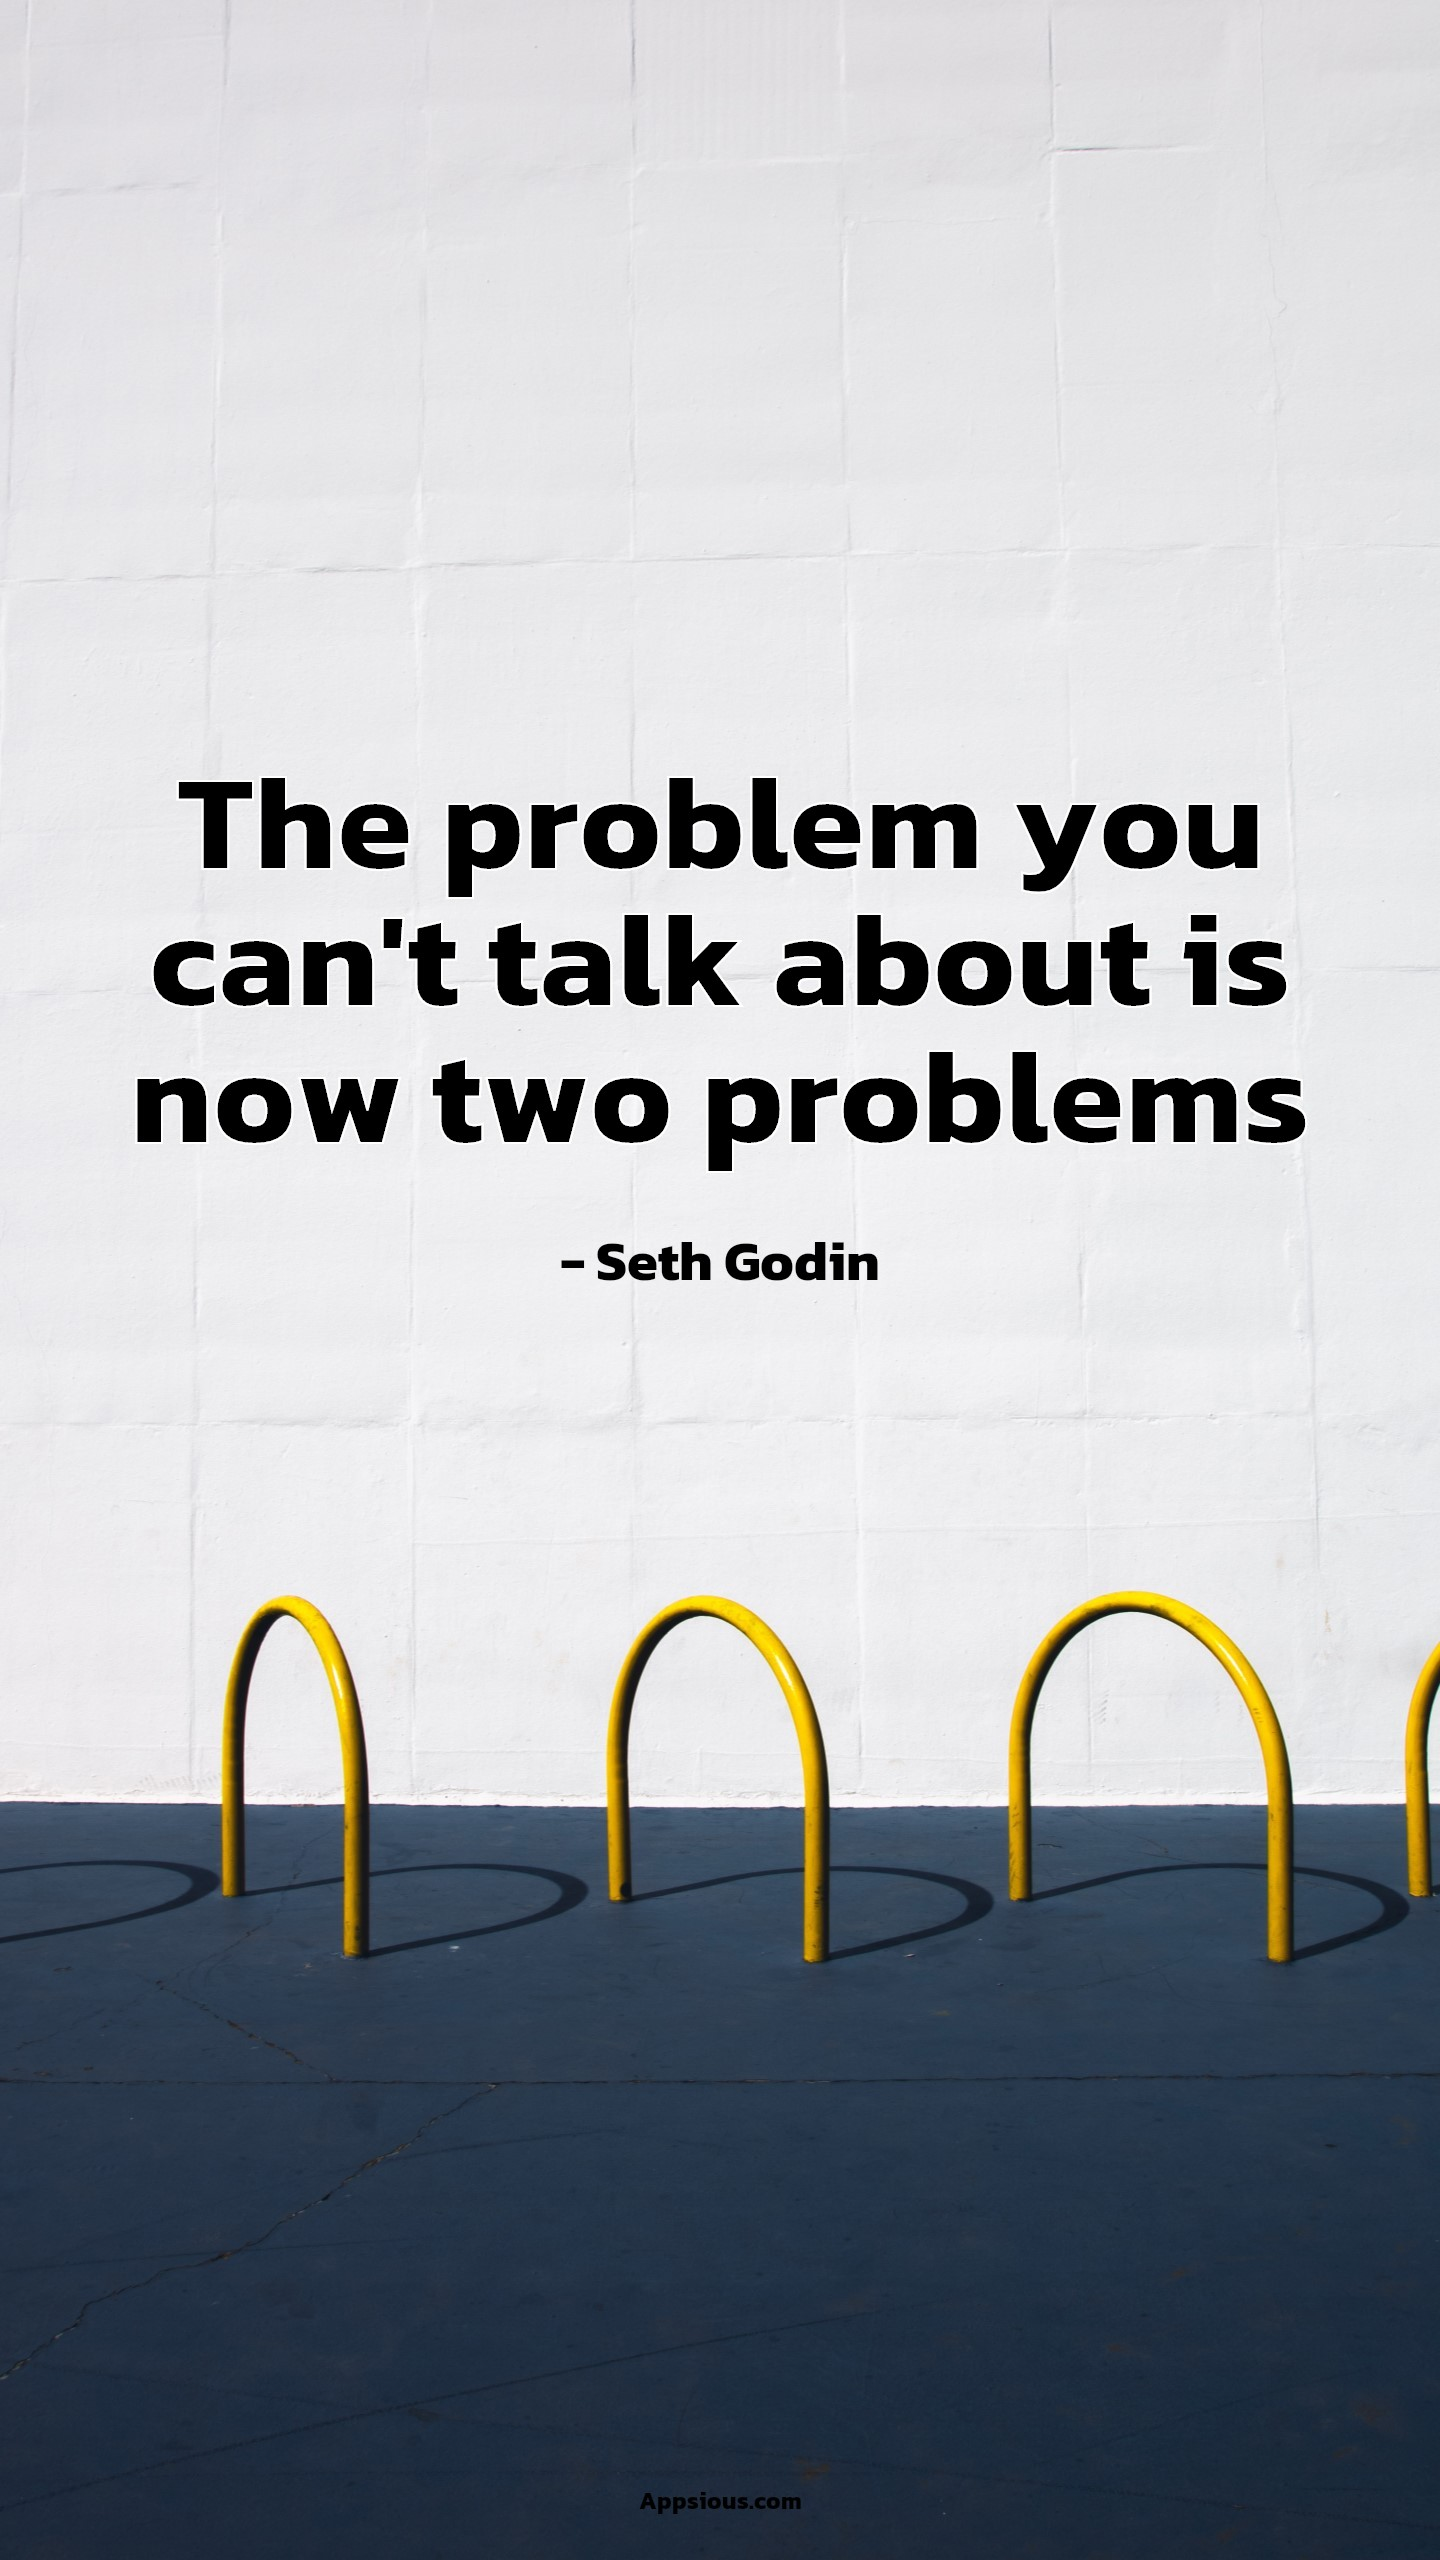 The problem you can't talk about is now two problems